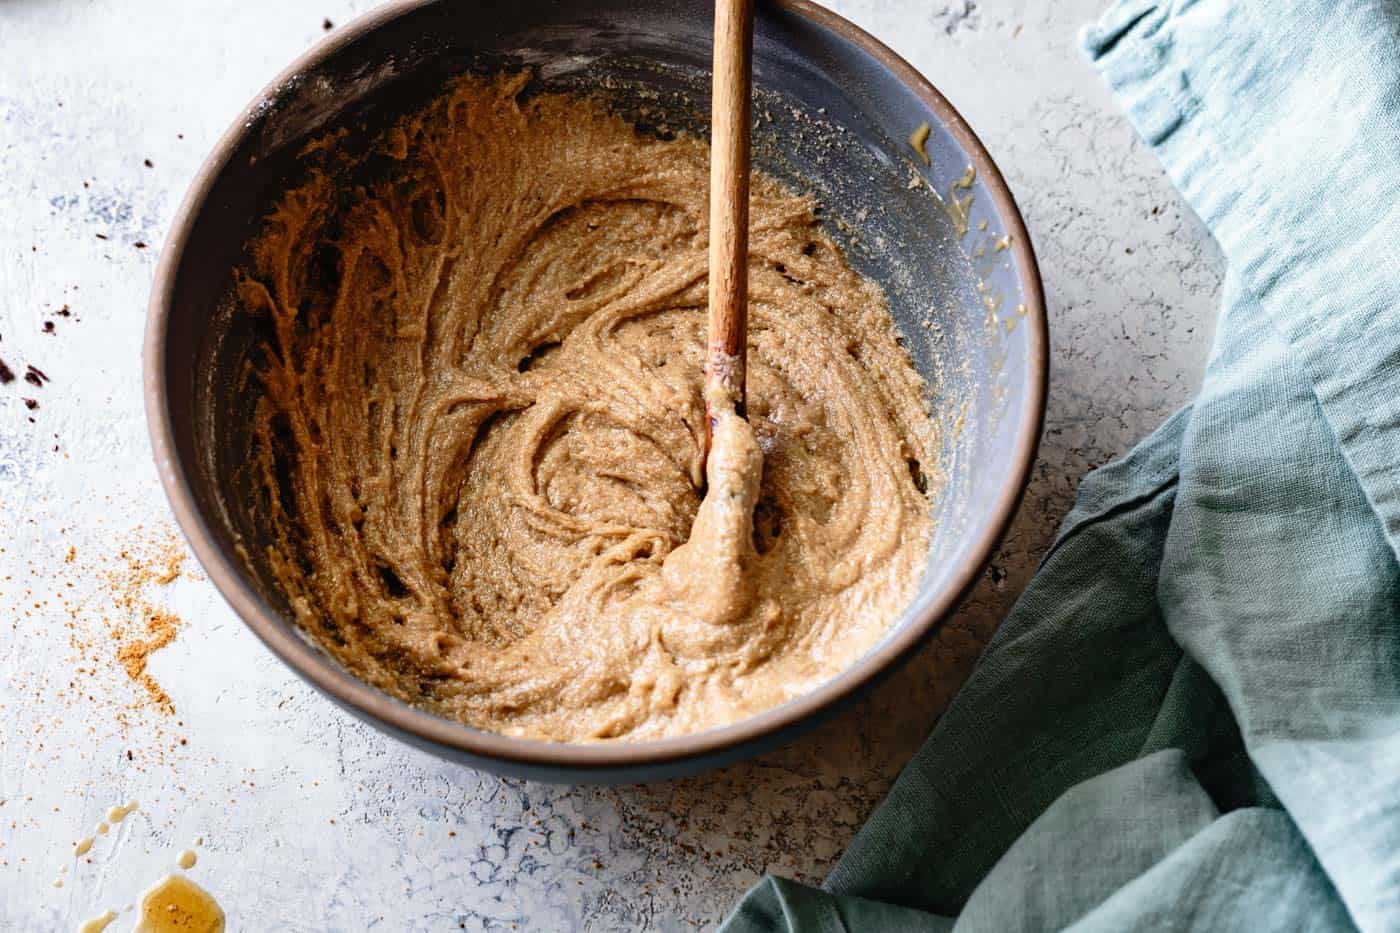 stirring the dough for grain-free chocolate chip cookie recipe